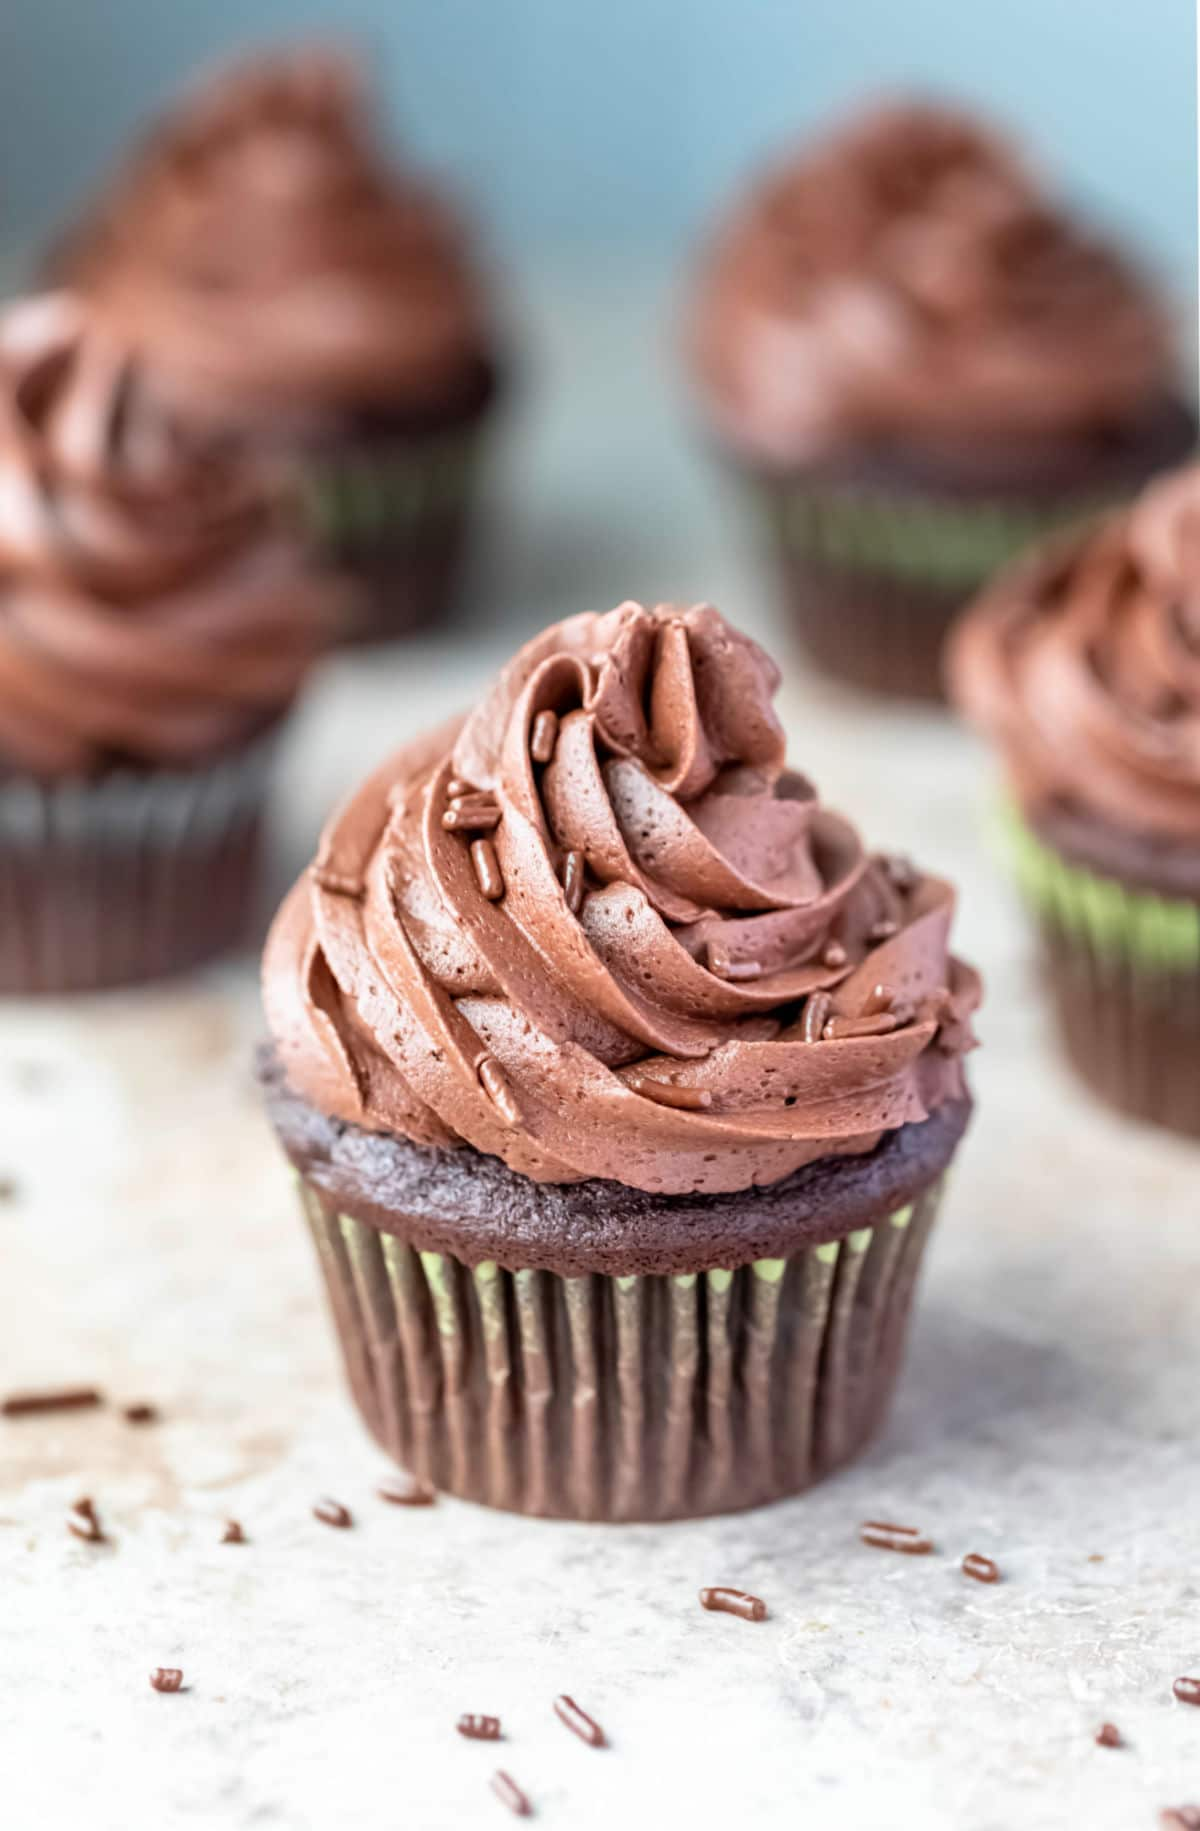 Five chocolate cupcakes topped with chocolate buttercream frosting.